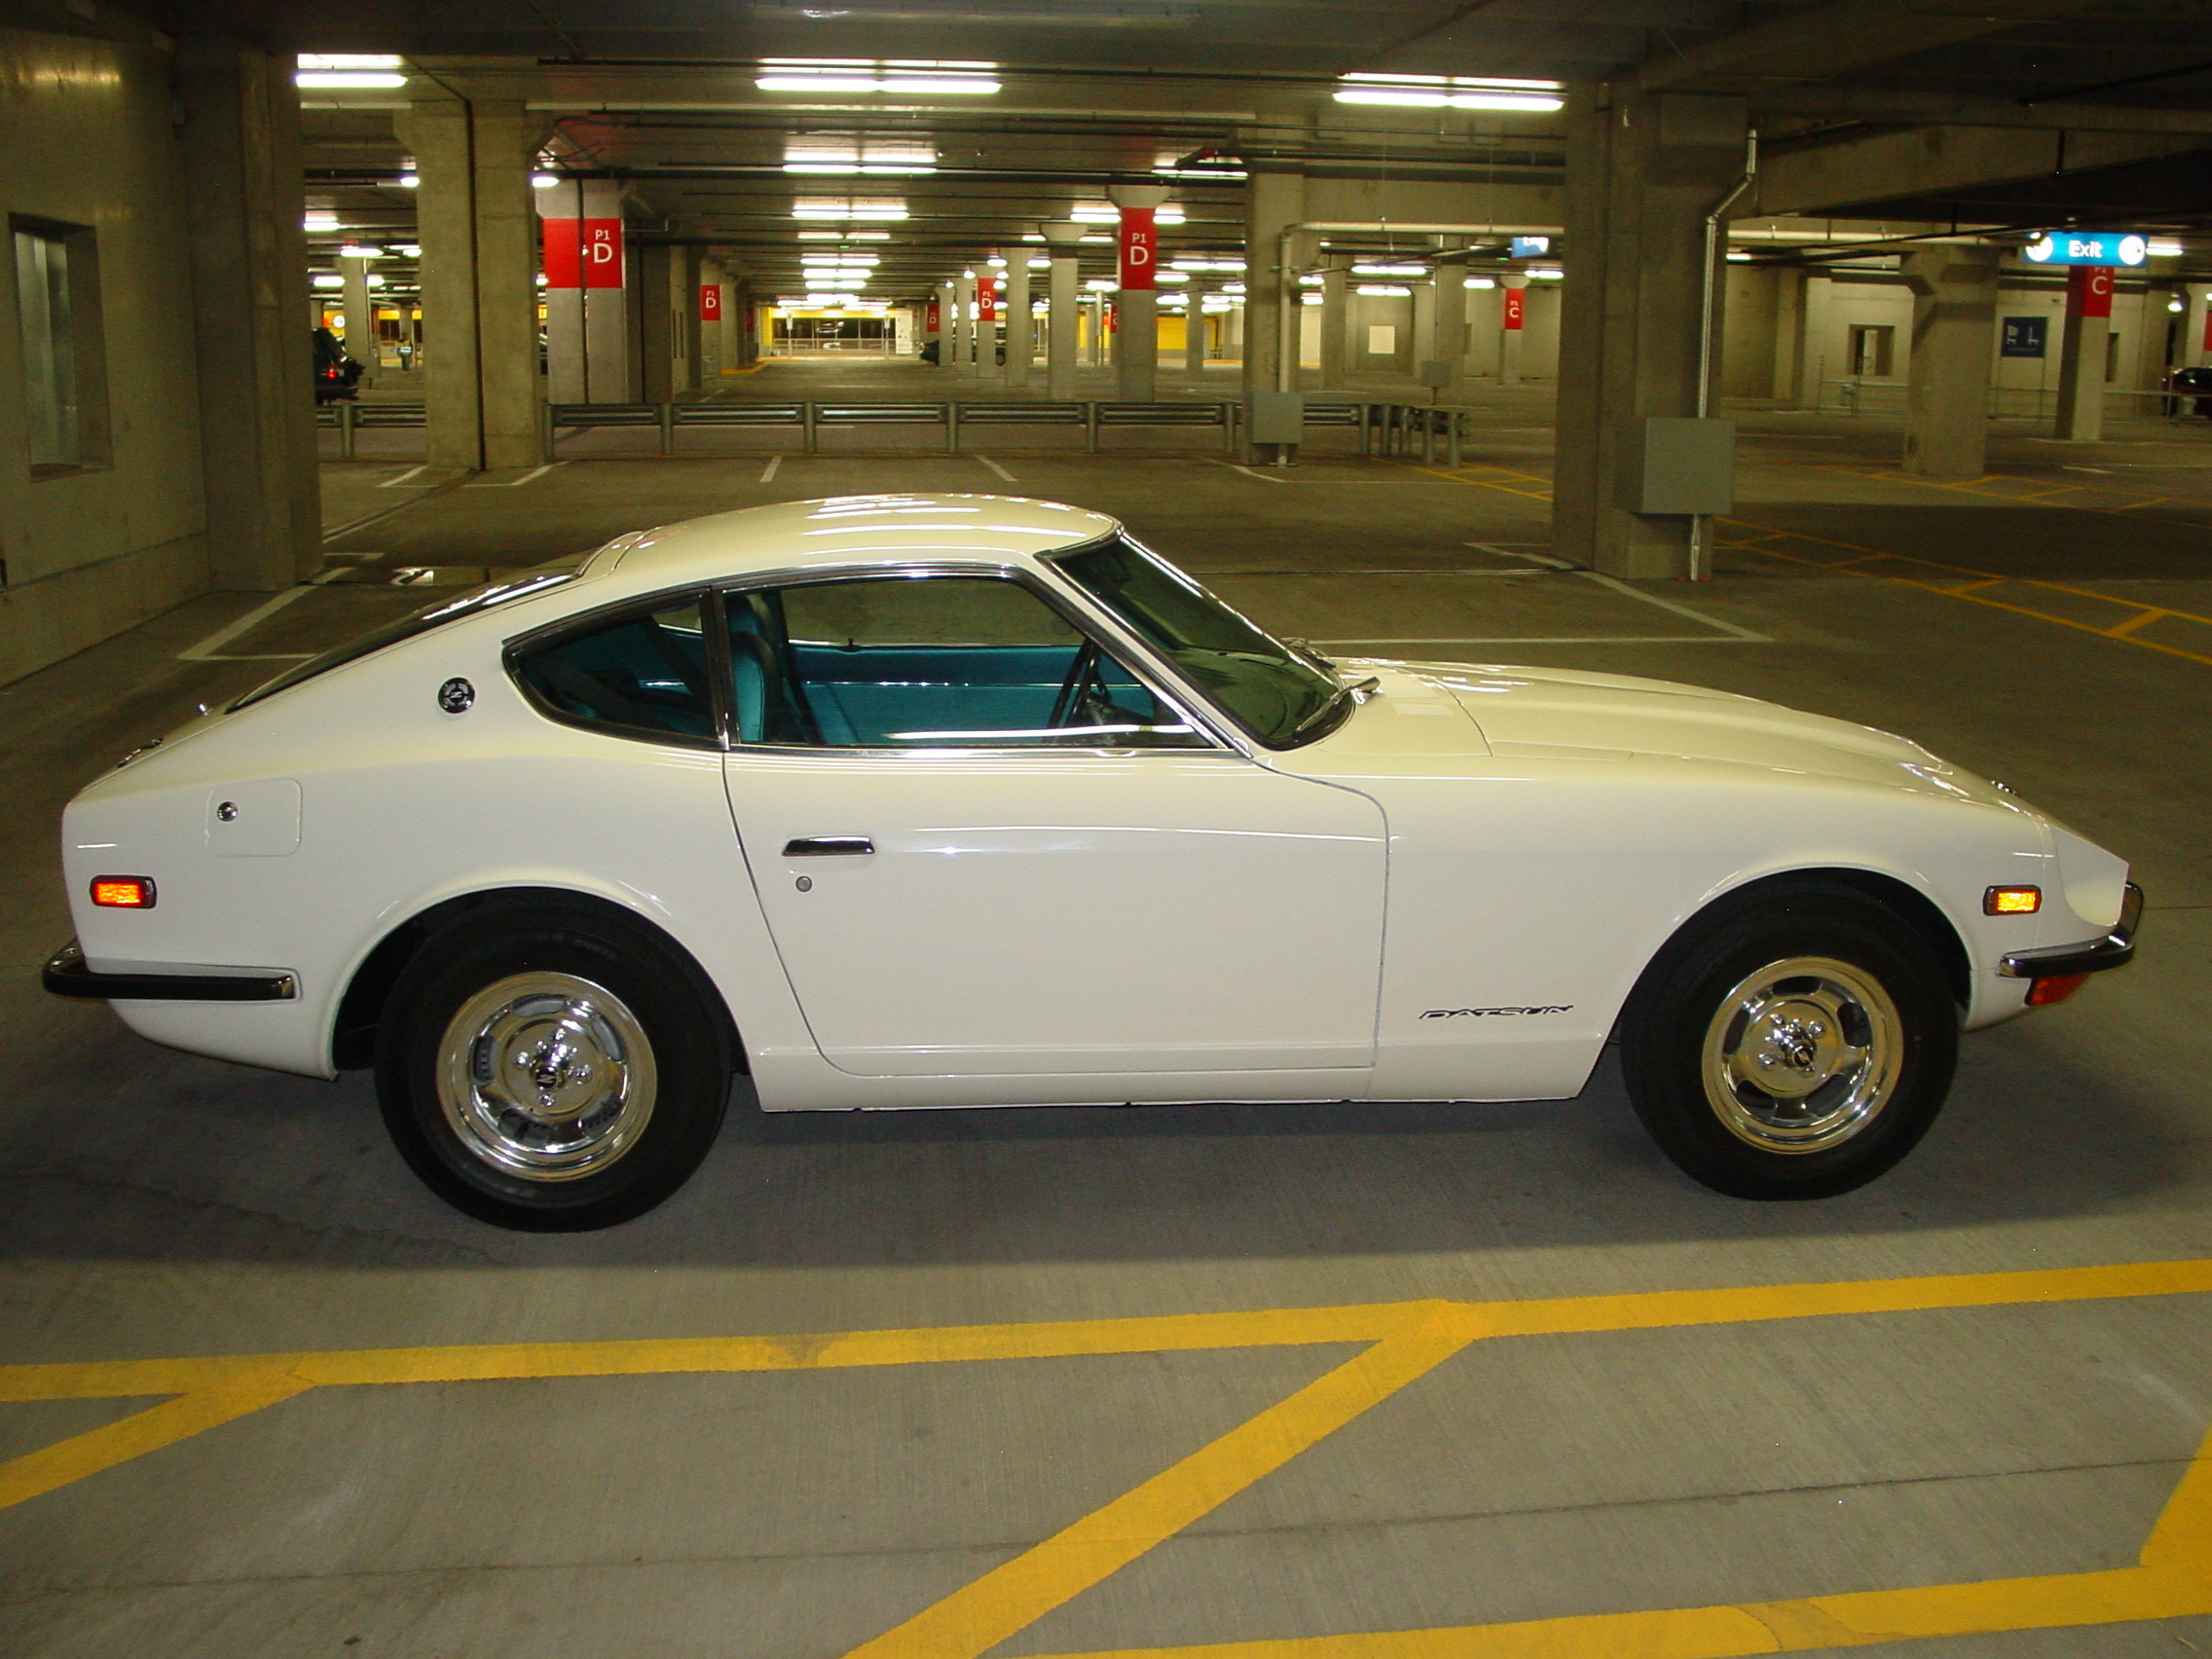 file my restored 39 71 datsun 240z with rare blue interior. Black Bedroom Furniture Sets. Home Design Ideas